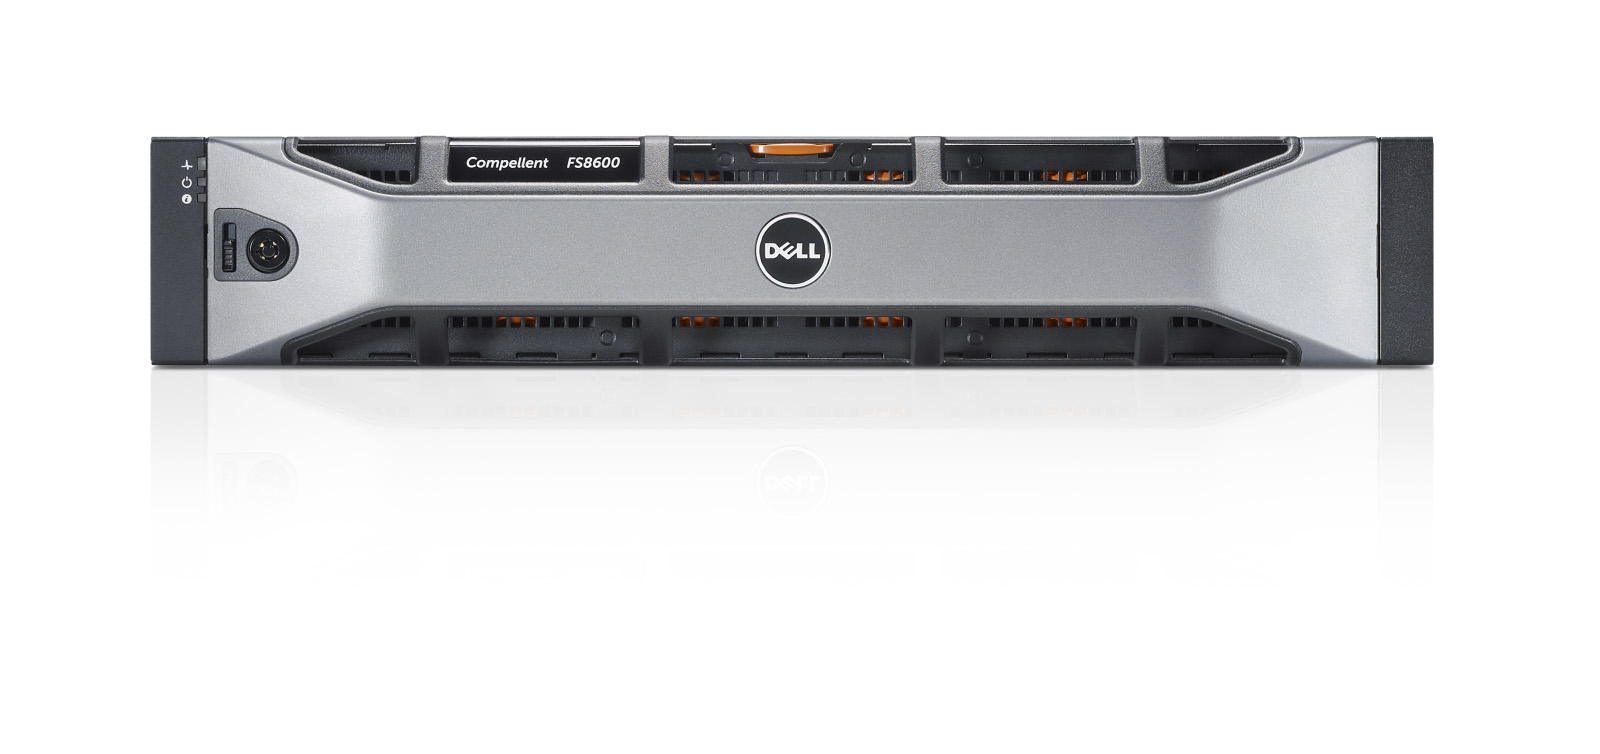 Compelling Storage for Dell's Fluid Data Proposition